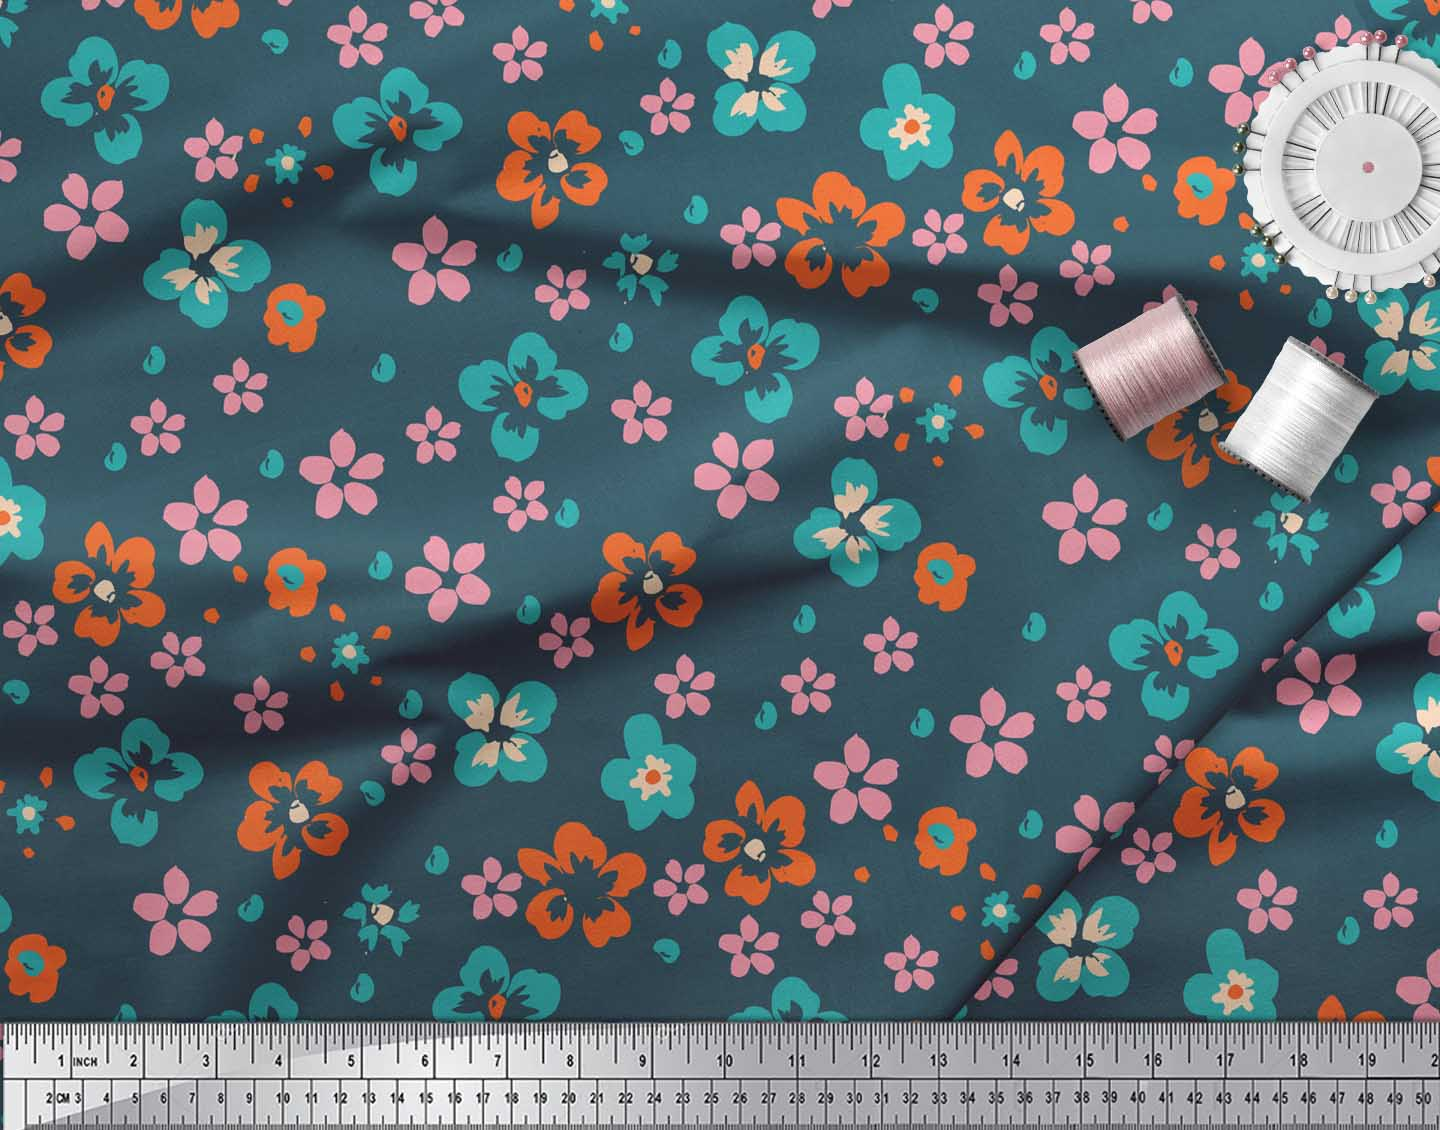 Soimoi-Blue-Cotton-Poplin-Fabric-Artistic-Floral-Printed-Craft-Fabric-HWv thumbnail 4